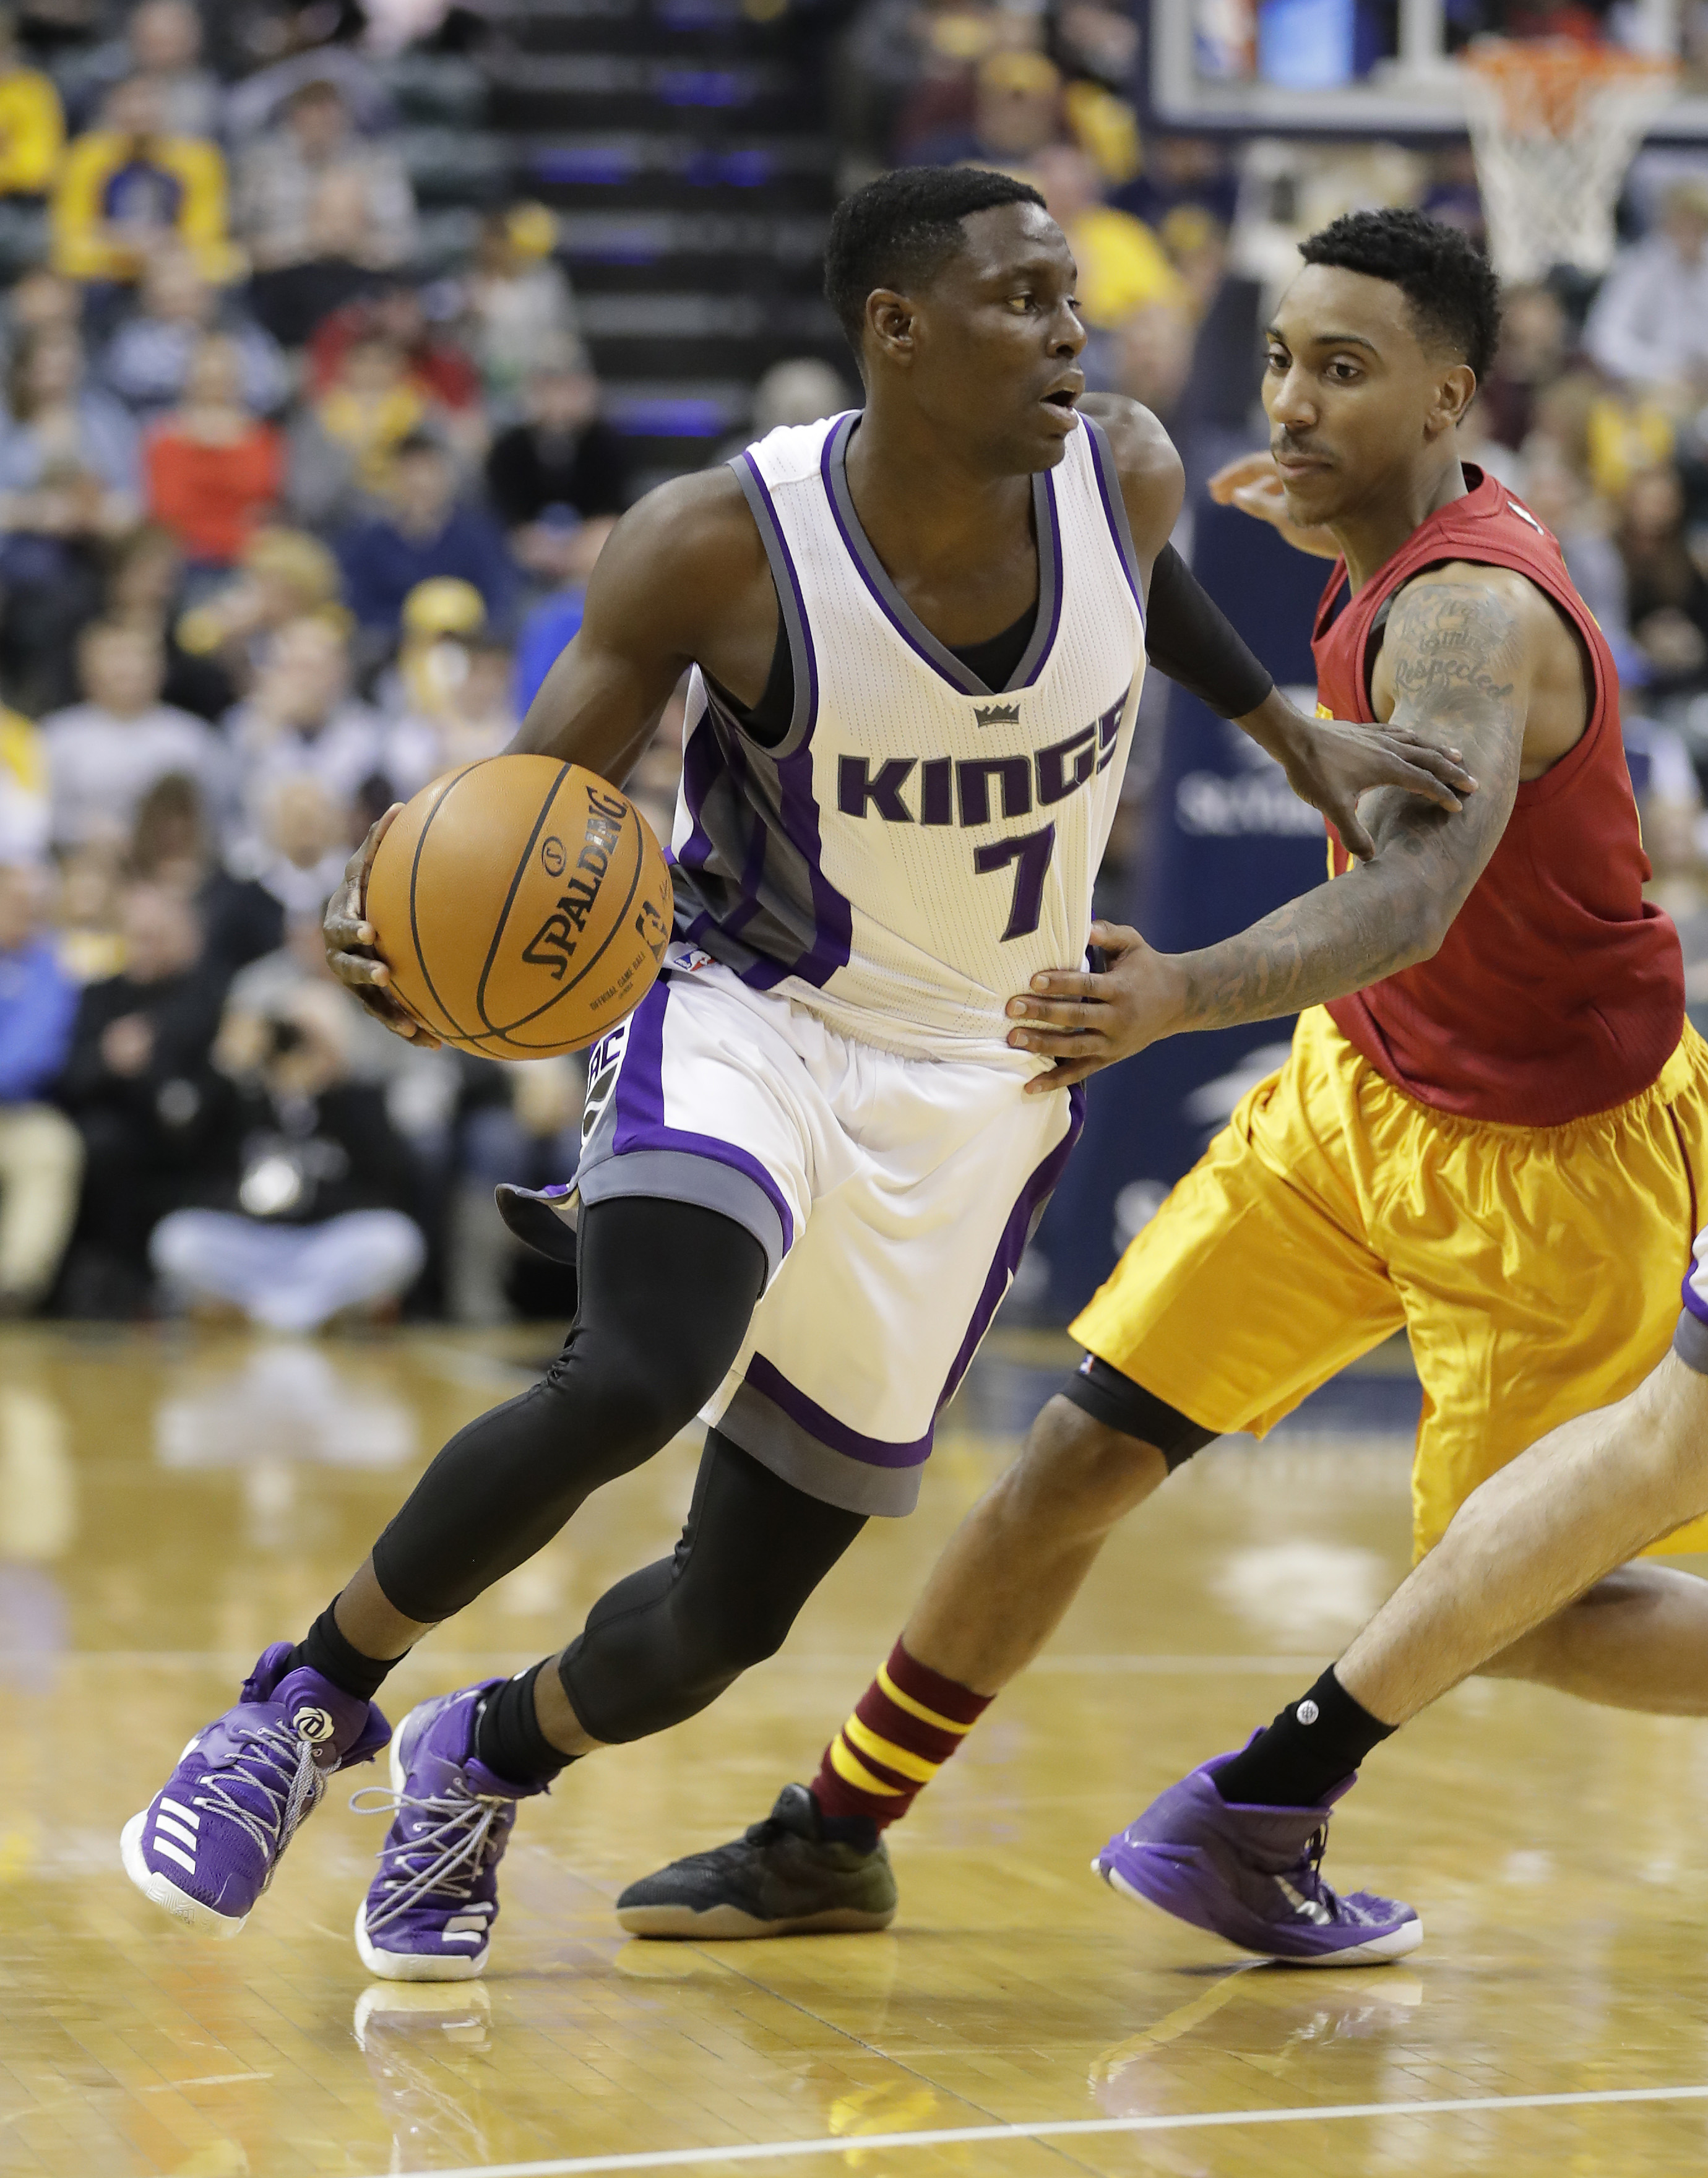 632875616-sacramento-kings-v-indiana-pacers.jpg